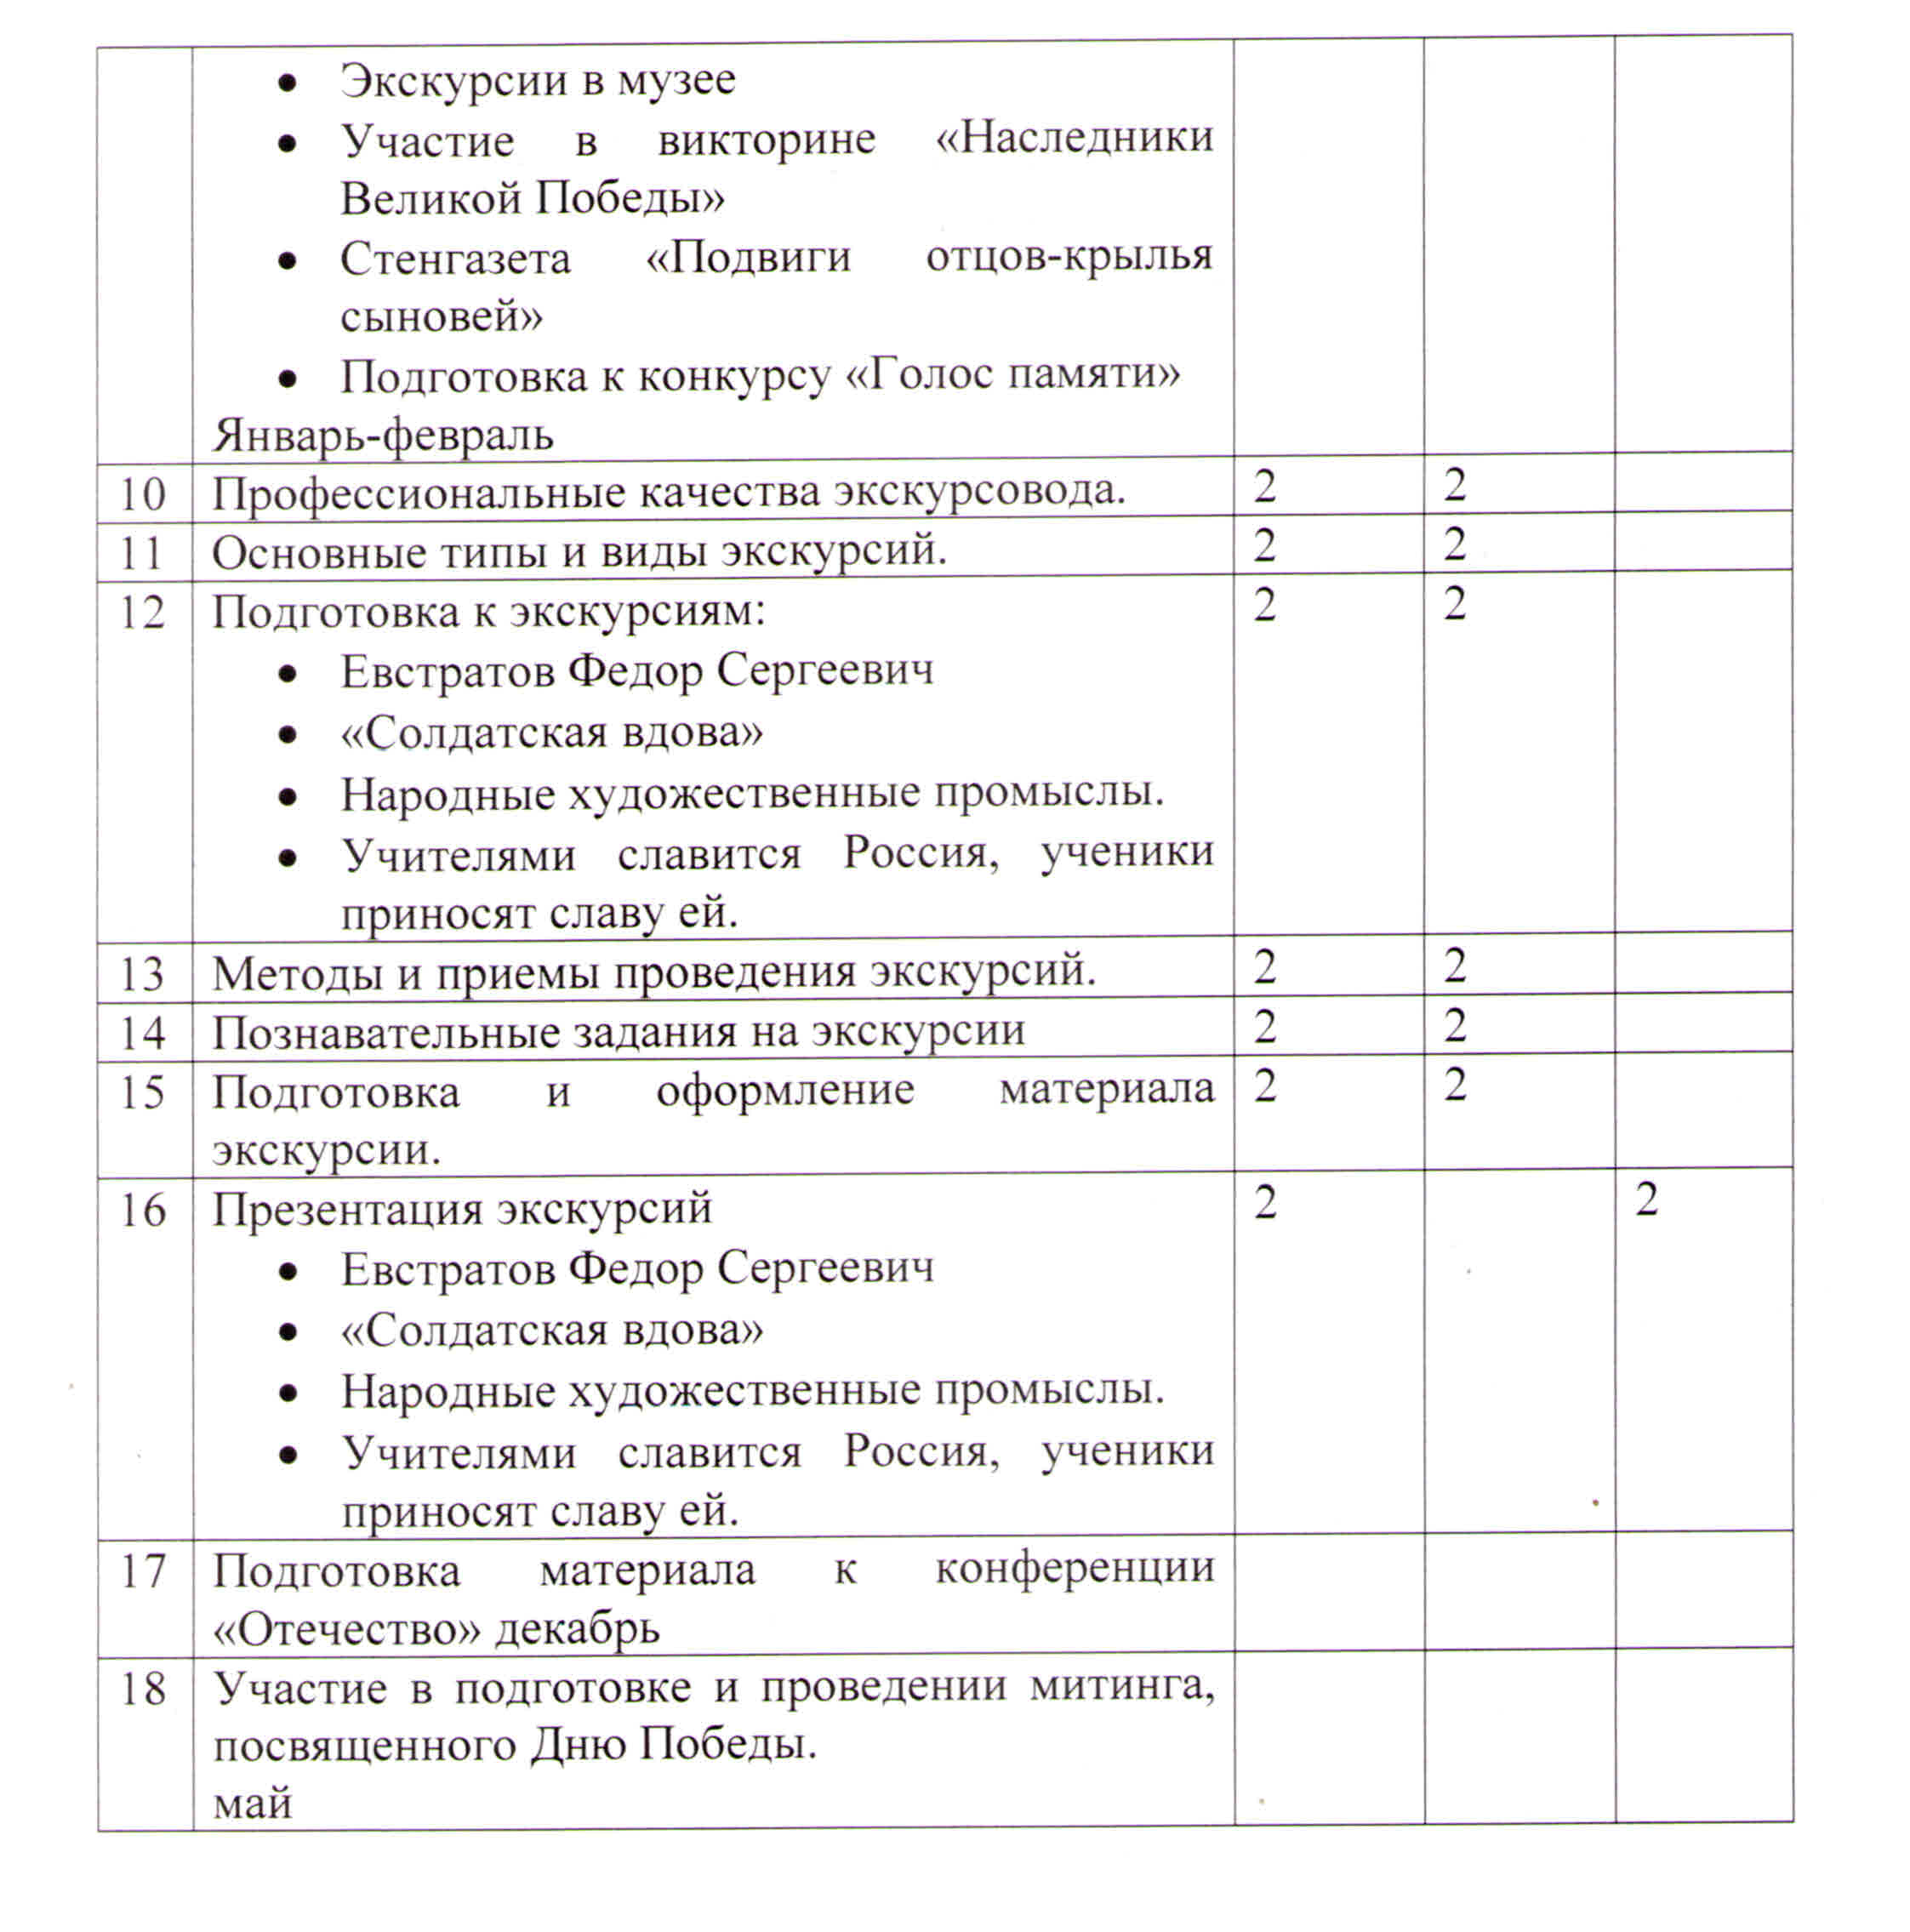 C:\Users\Сергей\Desktop\Document_26.jpg